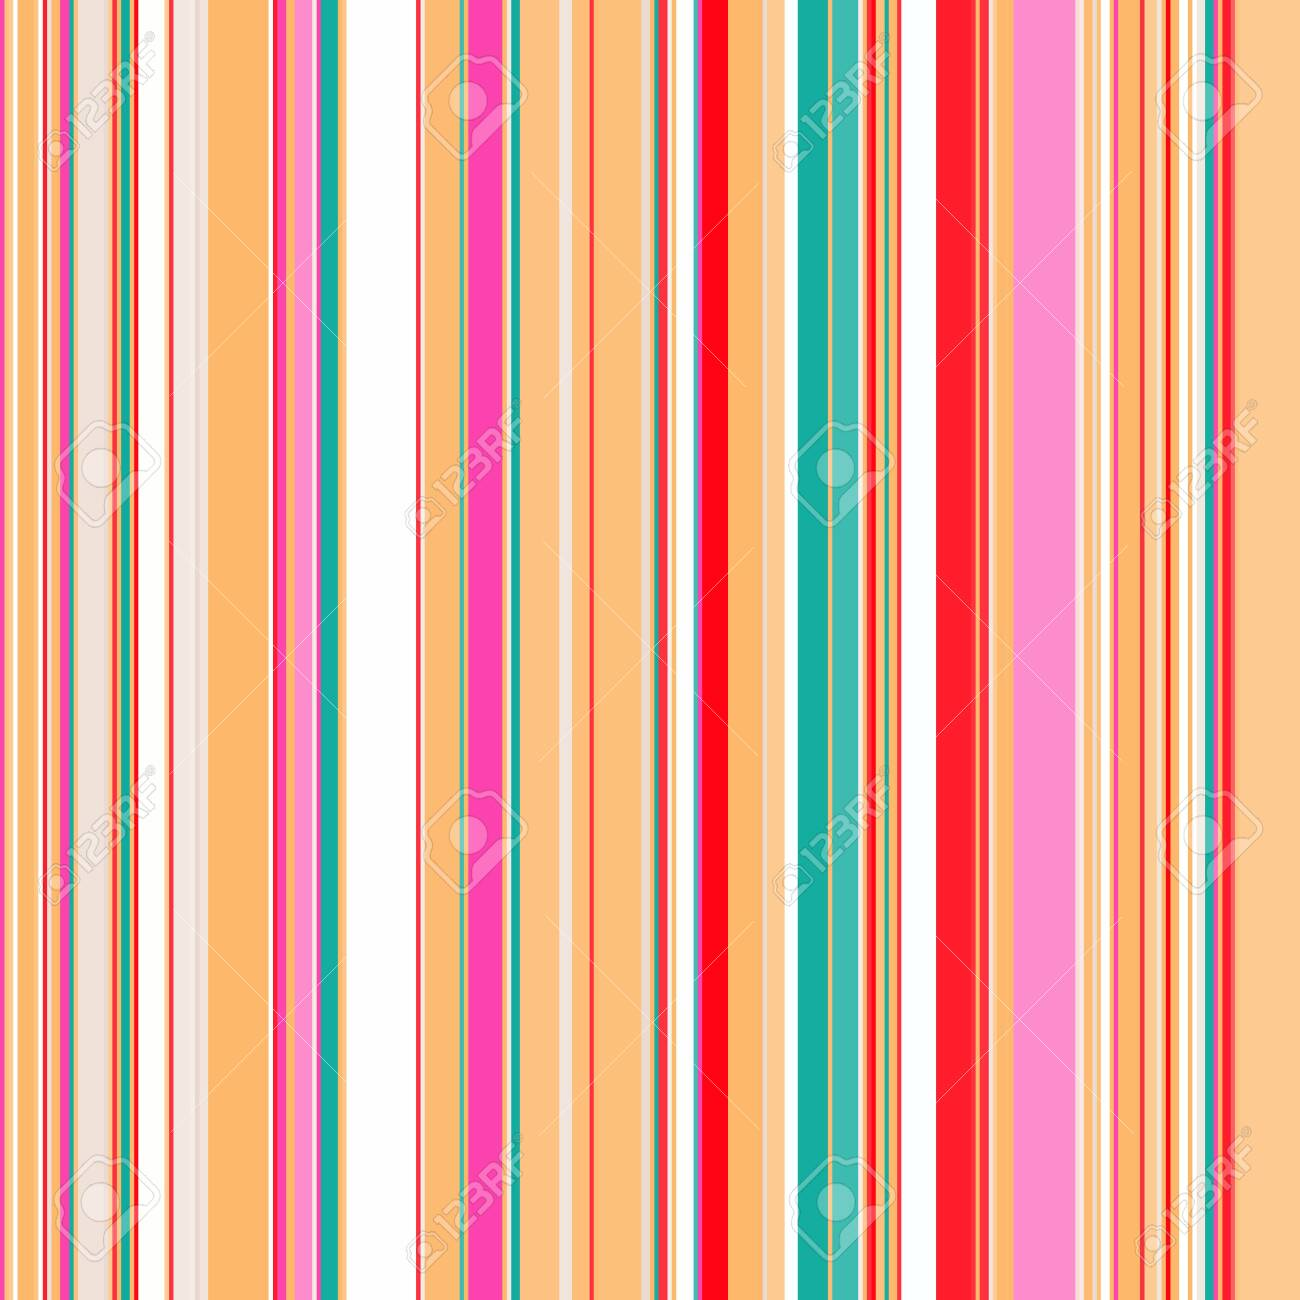 Seamless geometric print, vertical multicolor stripes of different sizes, bright contrasting colors. Great for decorating fabrics, textiles, gift wrapping, printed matter, interiors, advertising. - 150402461